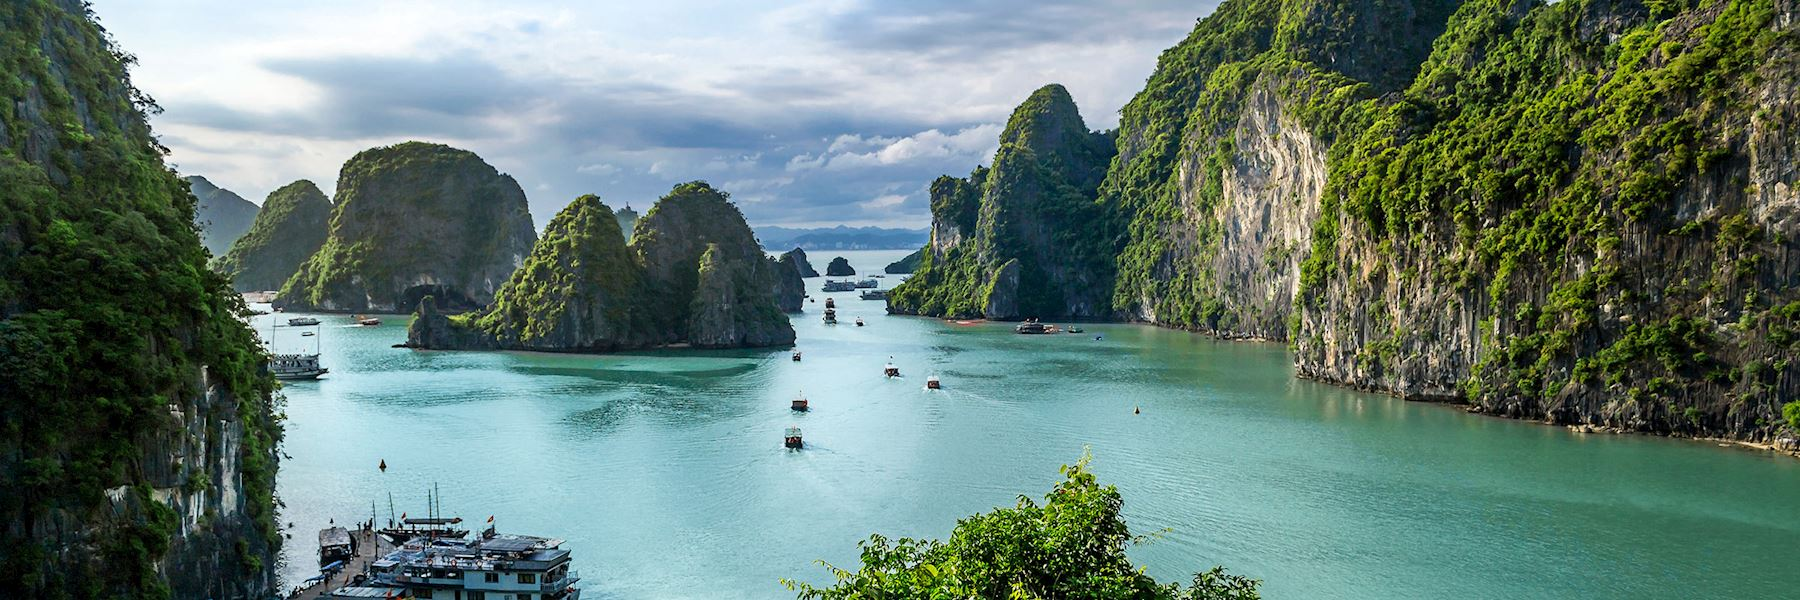 Visit Halong Bay on a trip to Vietnam